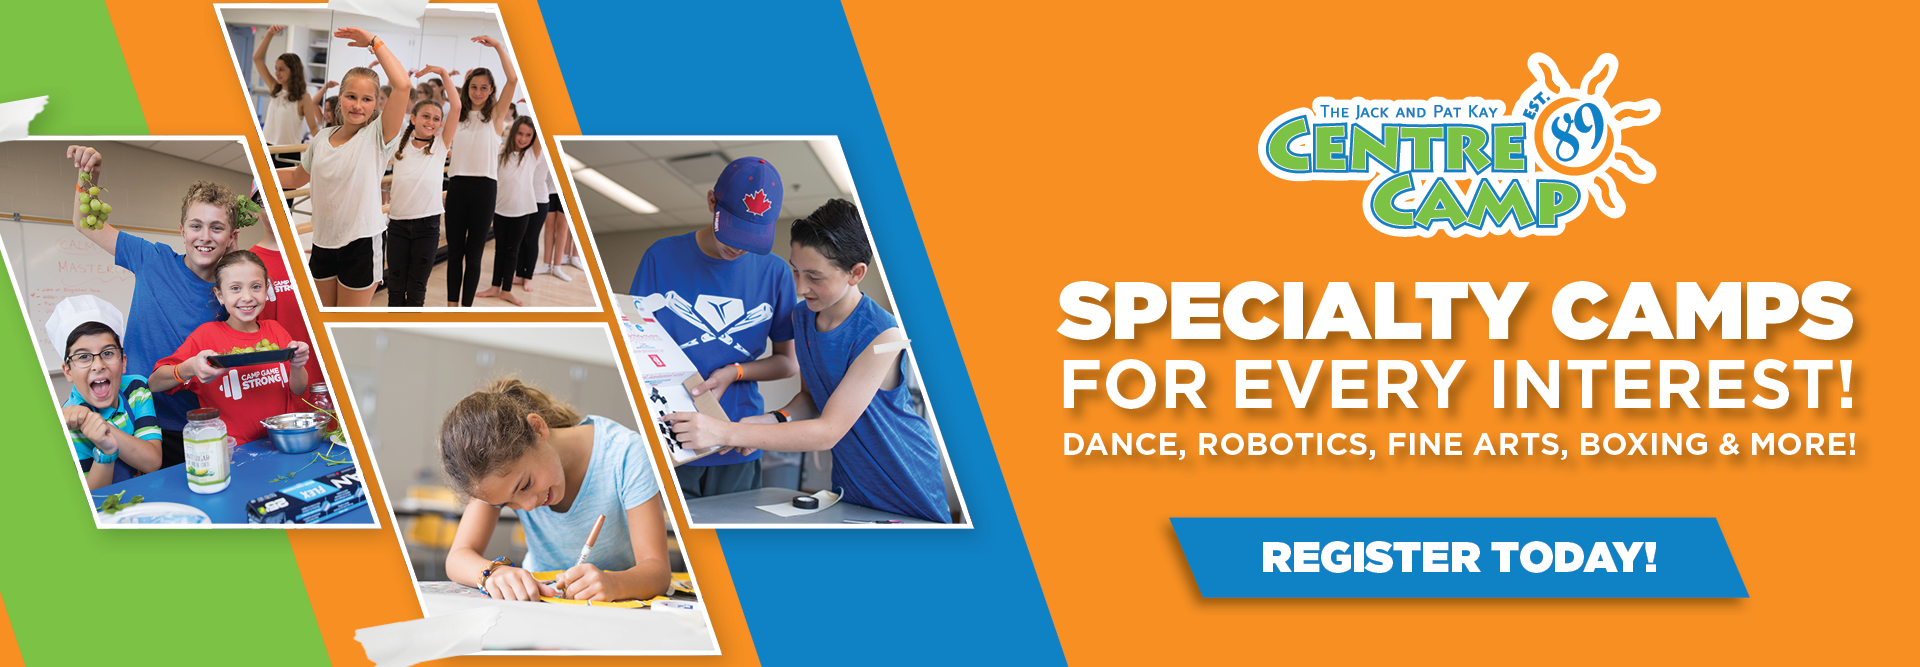 Specialty Camps for every interest!